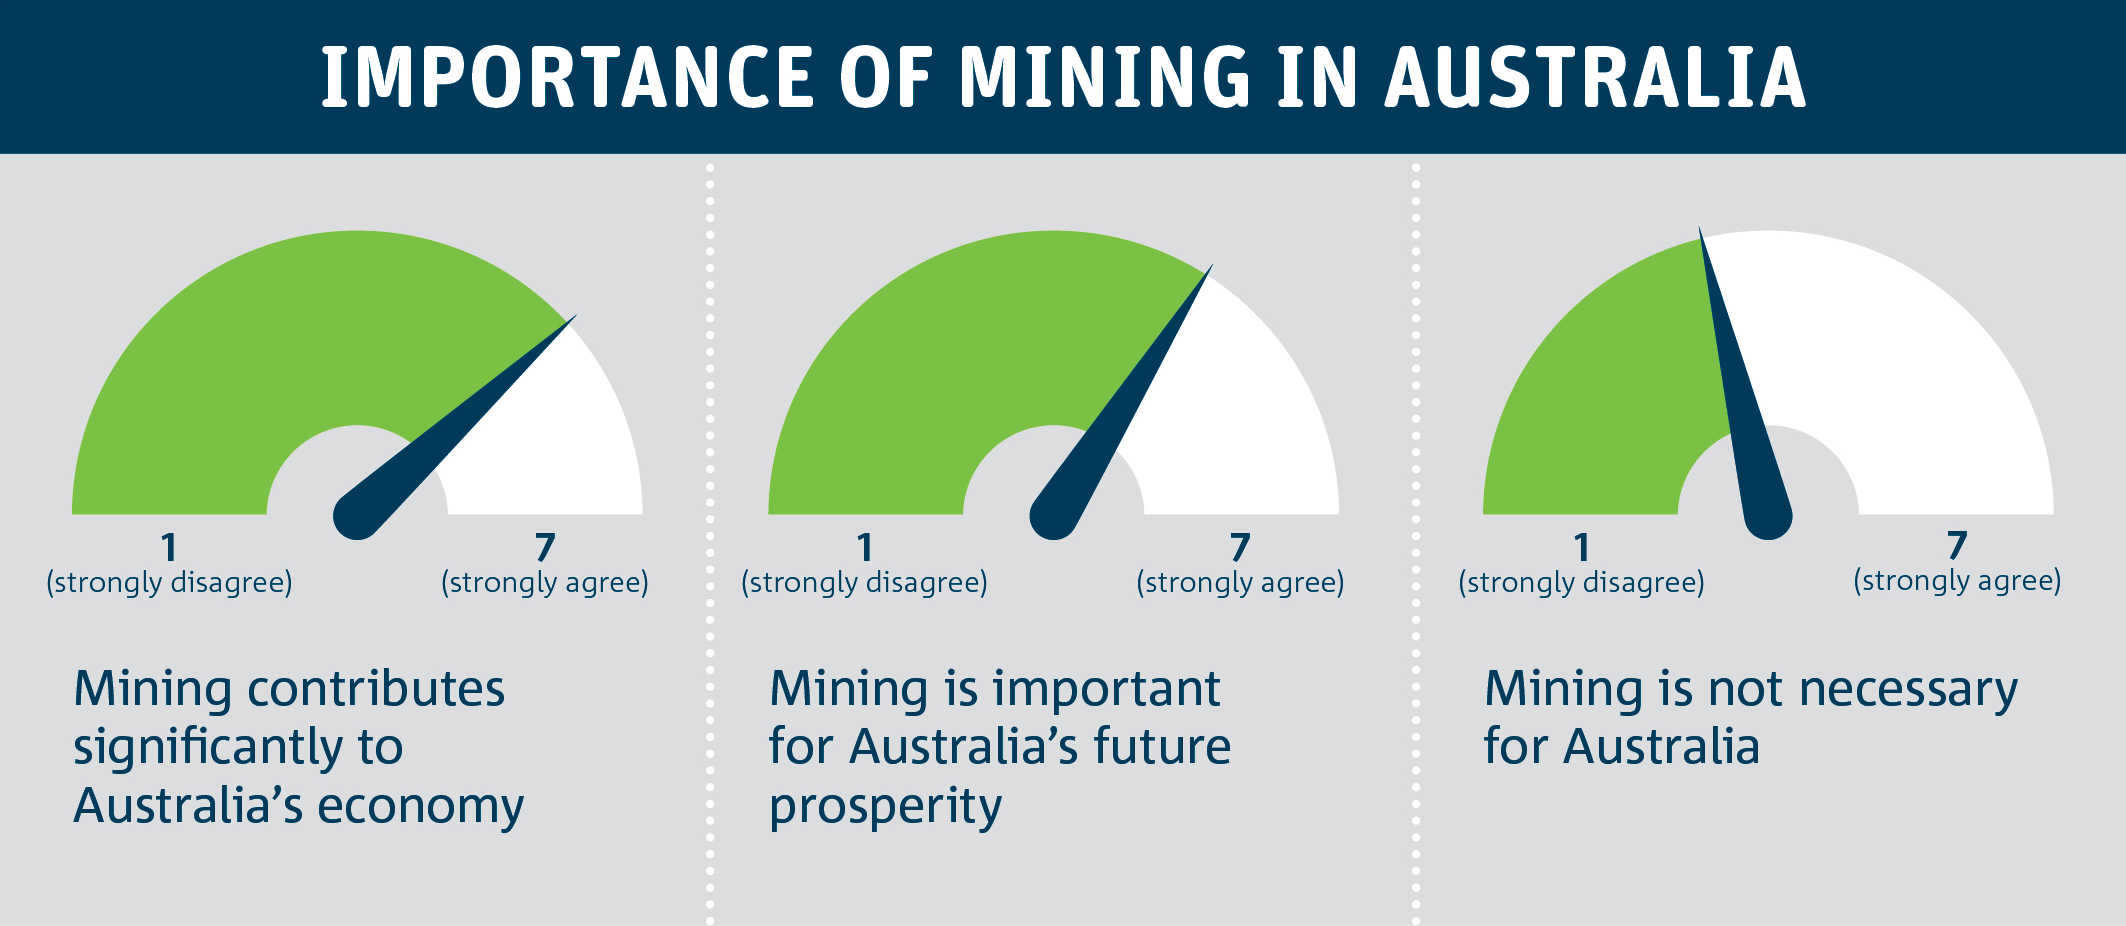 Diagram indicating Mining was viewed as a central and significant contributor to Australia's economy and standard of living, a 'necessary' industry for Australia.